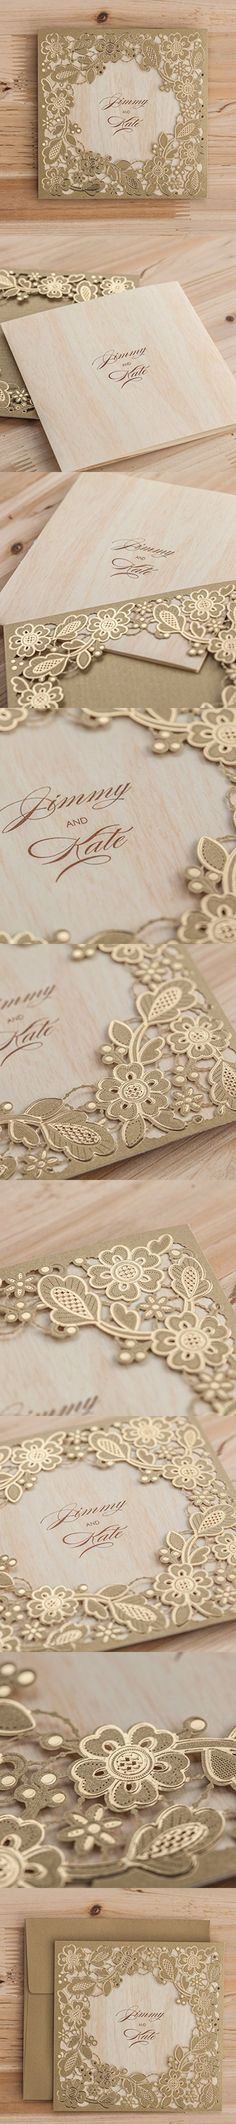 Wishmade 50x Gold Laser Cut Square Wedding Invitation Cards Kits with Embossed Hollow Floral Favors Bridal Shower Engagement Birthday Baby Shower Quinceanera Graduation Cardstock(set of 50pcs) CW5279